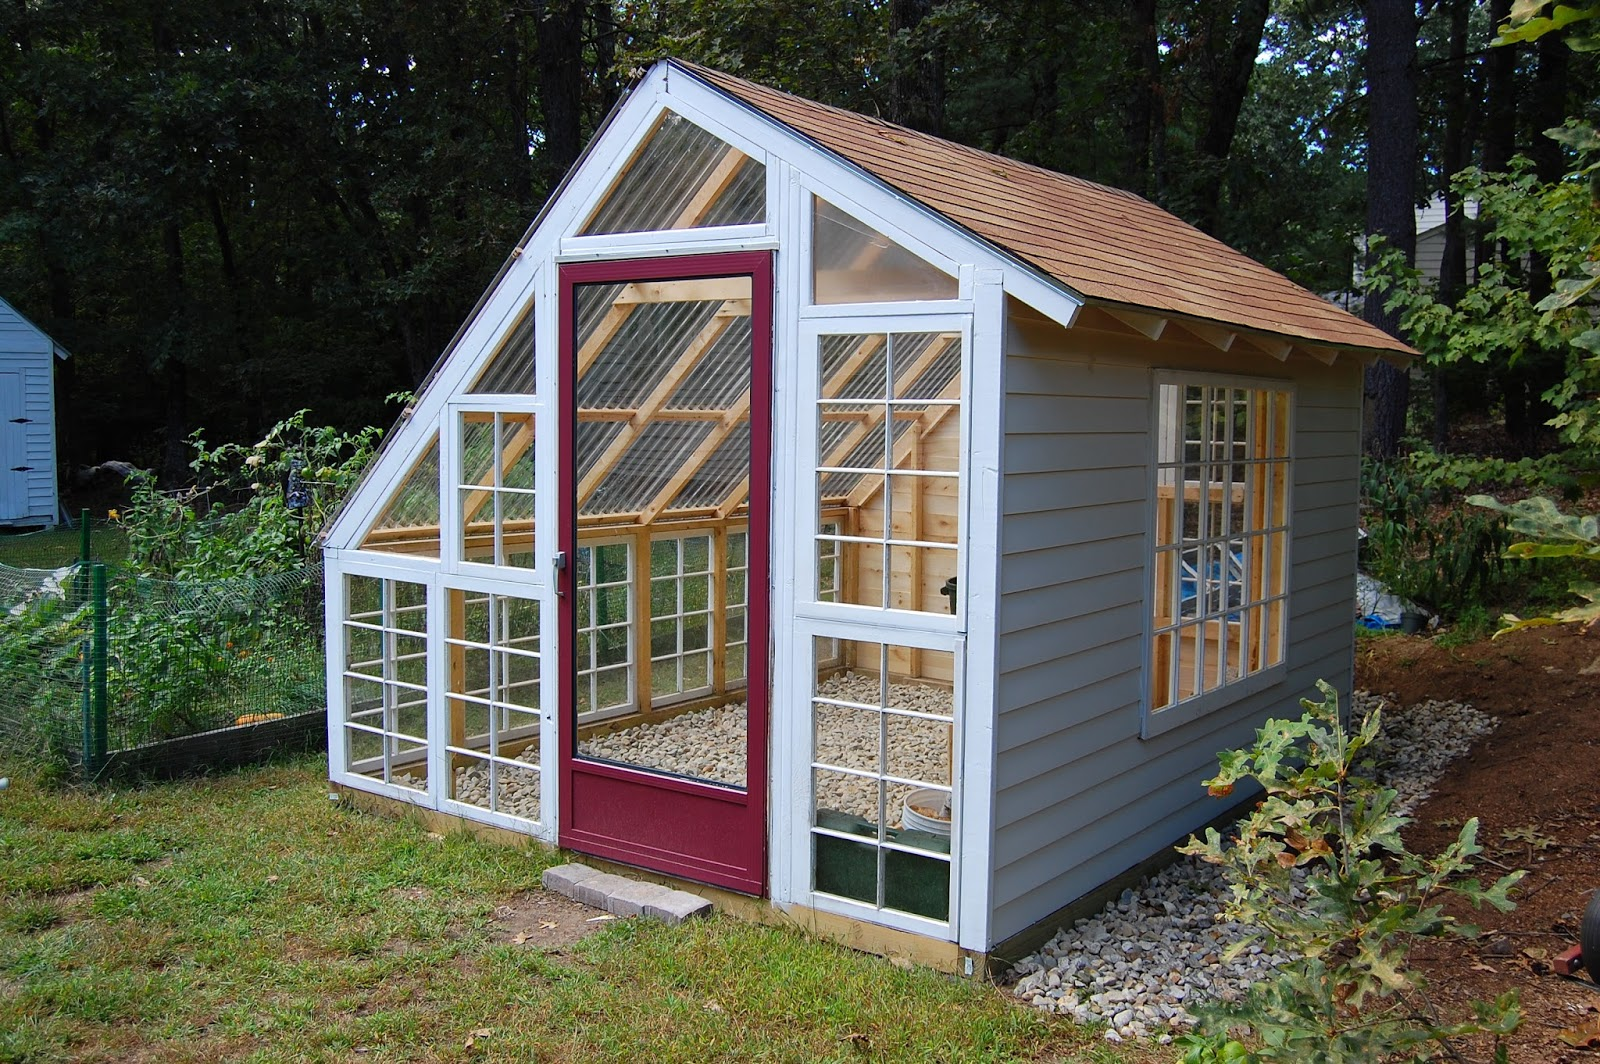 Custom Backyard Greenhouse with Recycled Windows: December ...